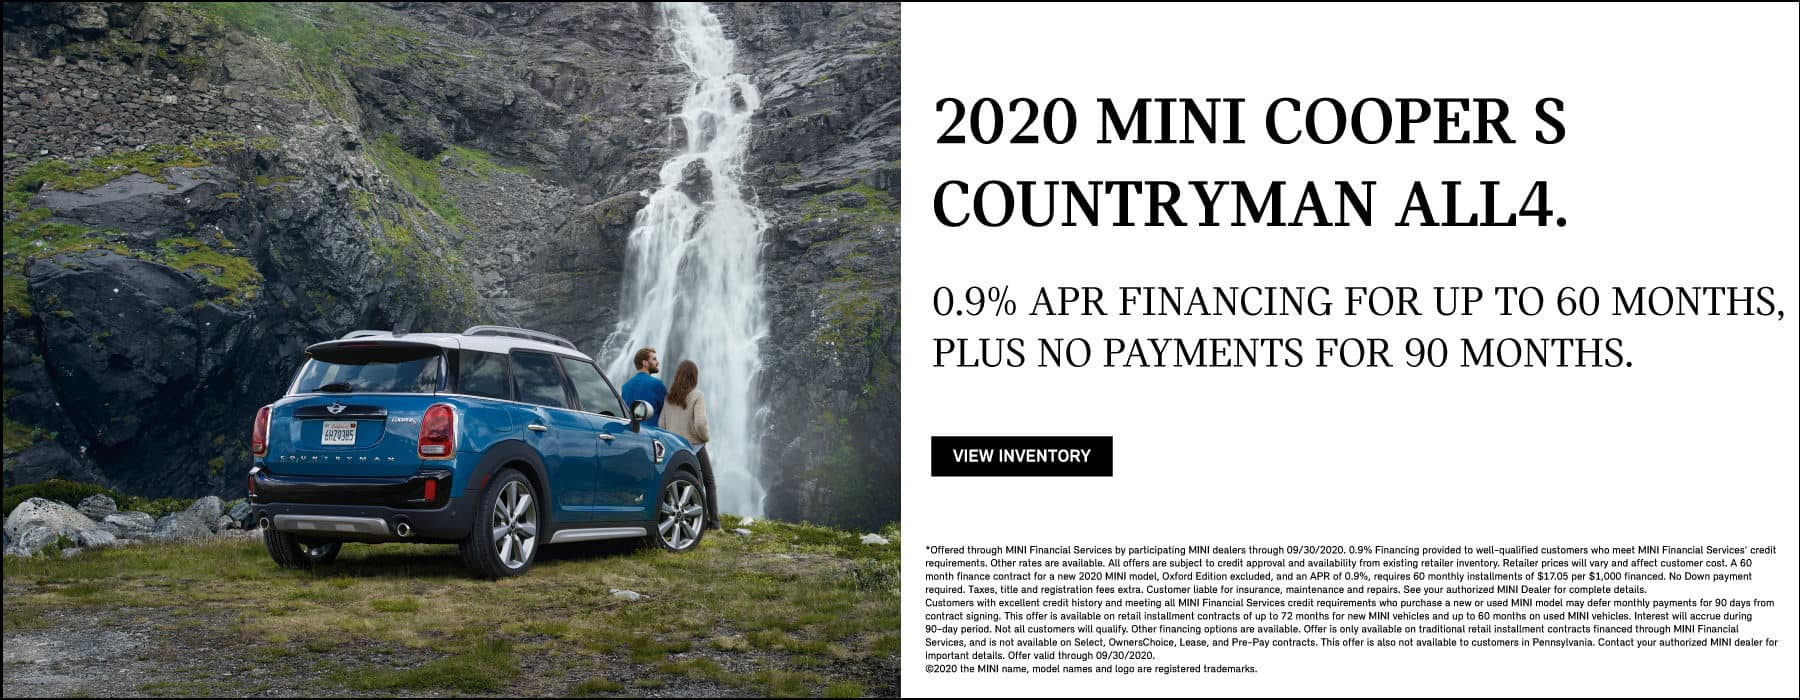 2020 MINI COOPER S COUNTRYMAN ALL4. 0.9% APR FINANCING FOR UP TO 60 MONTHS, PLUS NO PAYMENTS FOR 90 DAYS